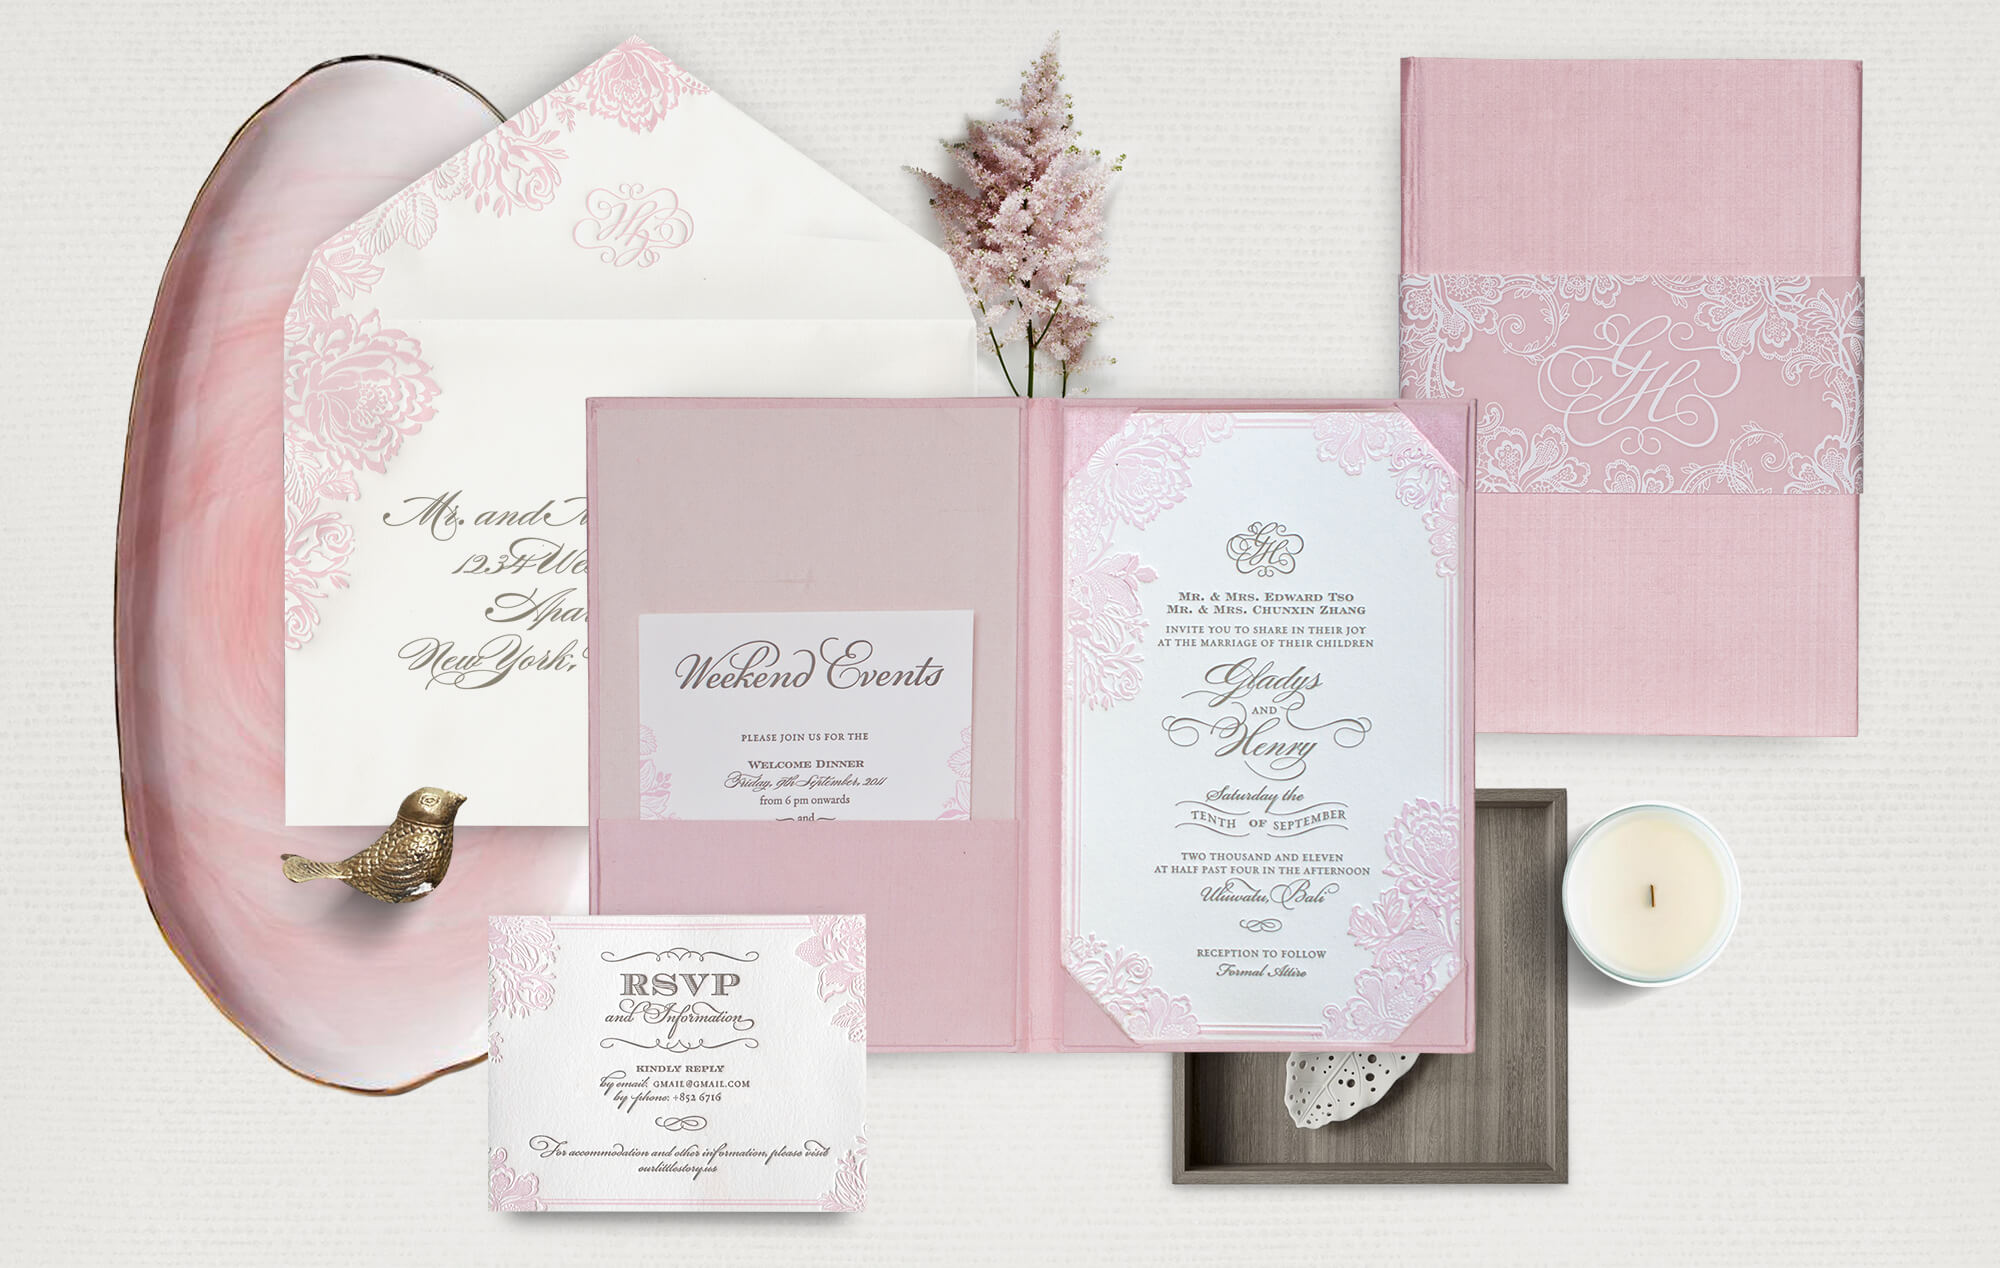 Blush pink invitation with a silk folder